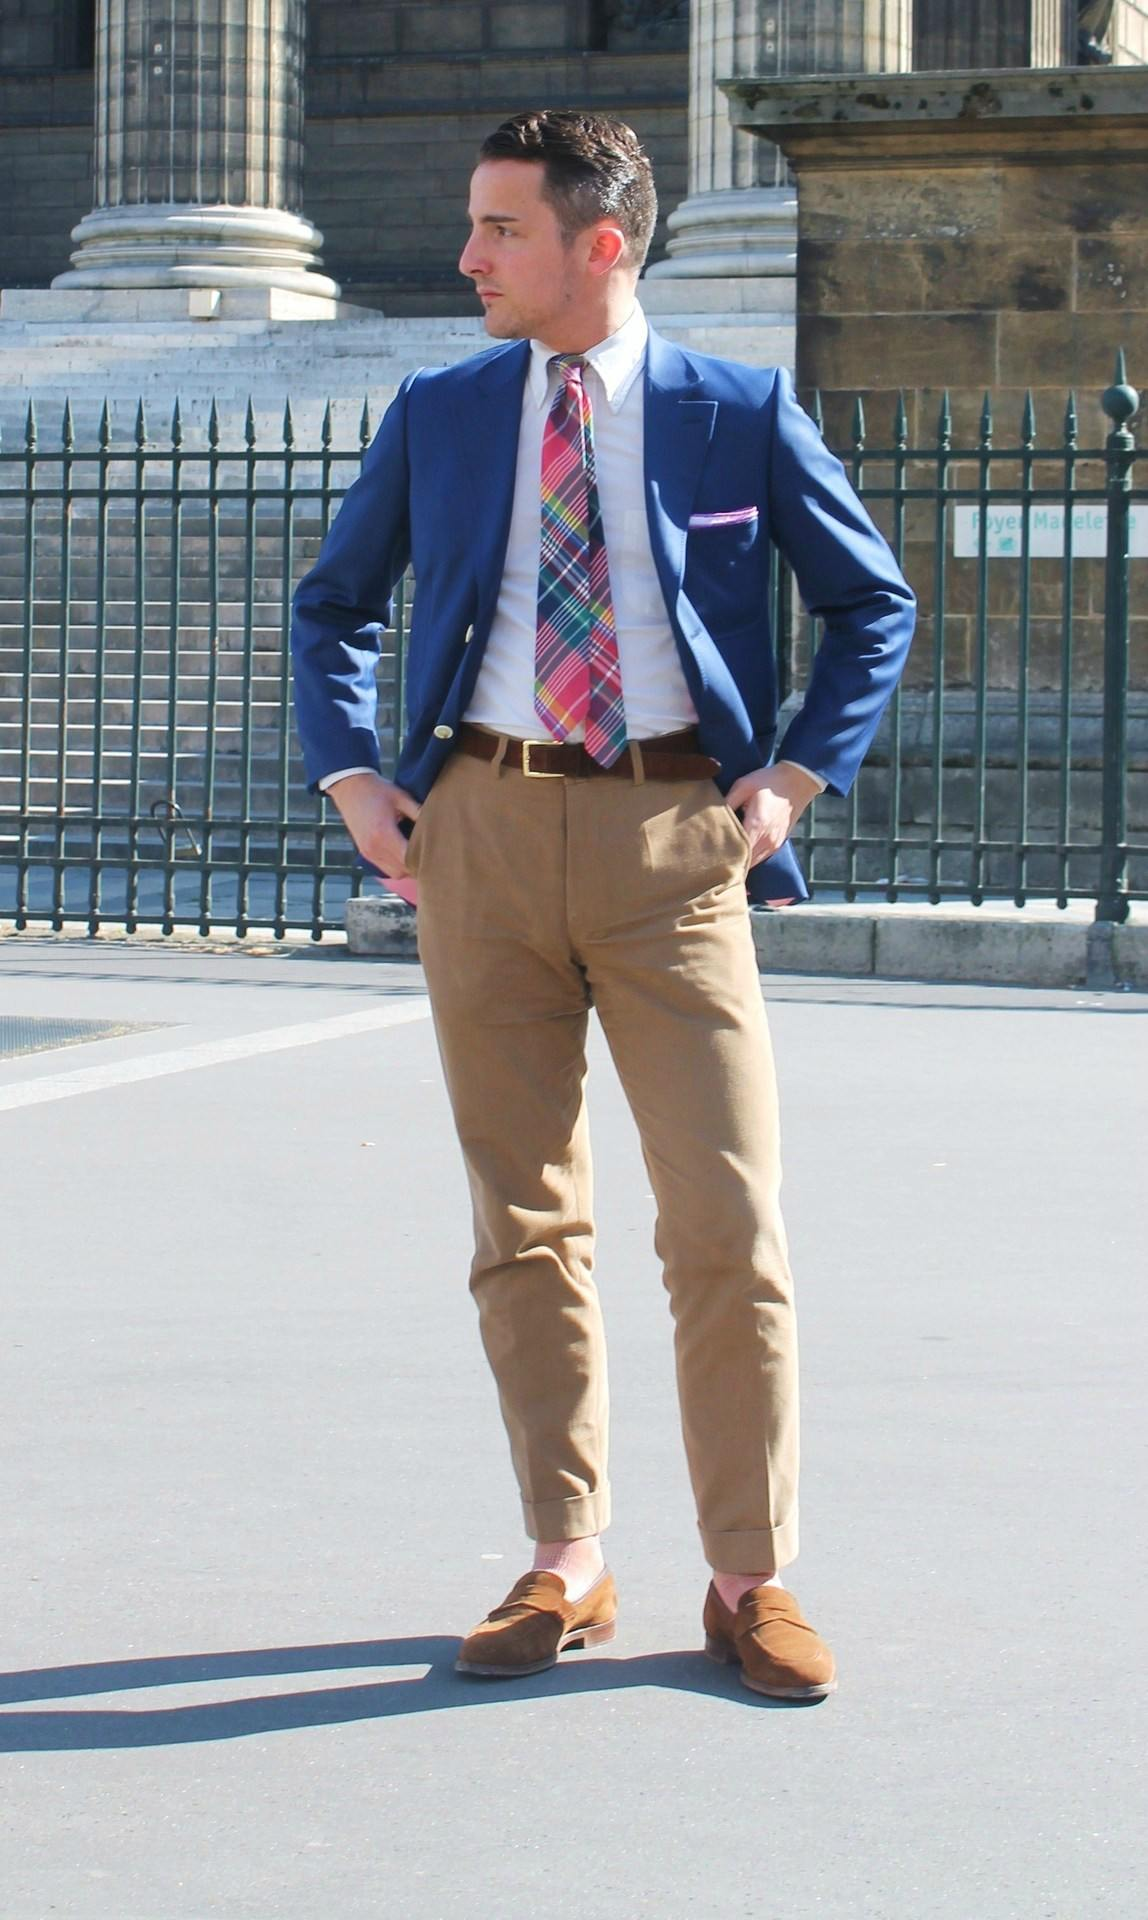 man wearing khaki chinos and colorful tie